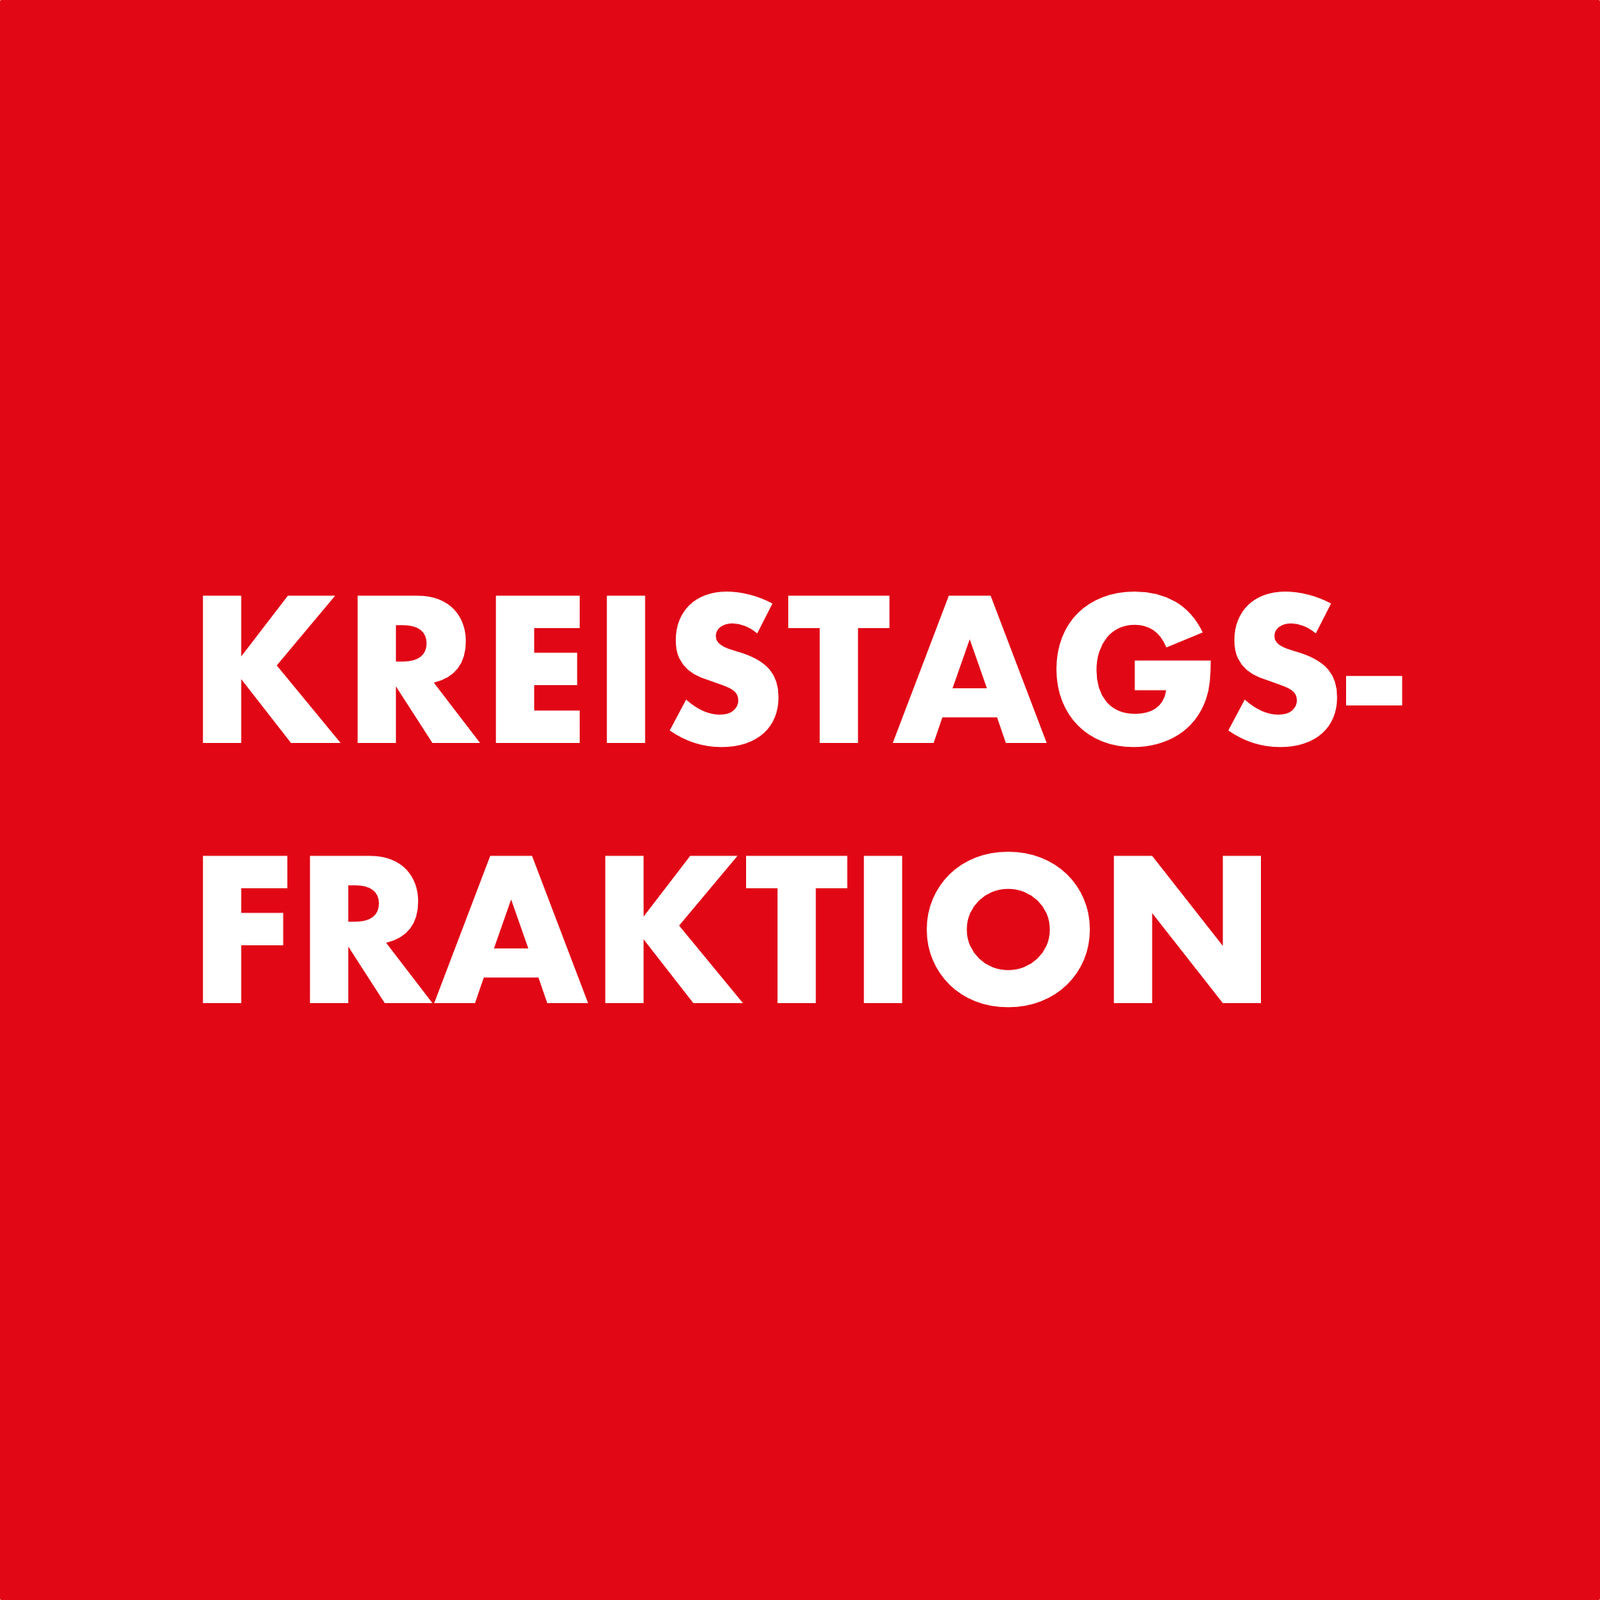 """""KREISTAGSFRAKTION"""""